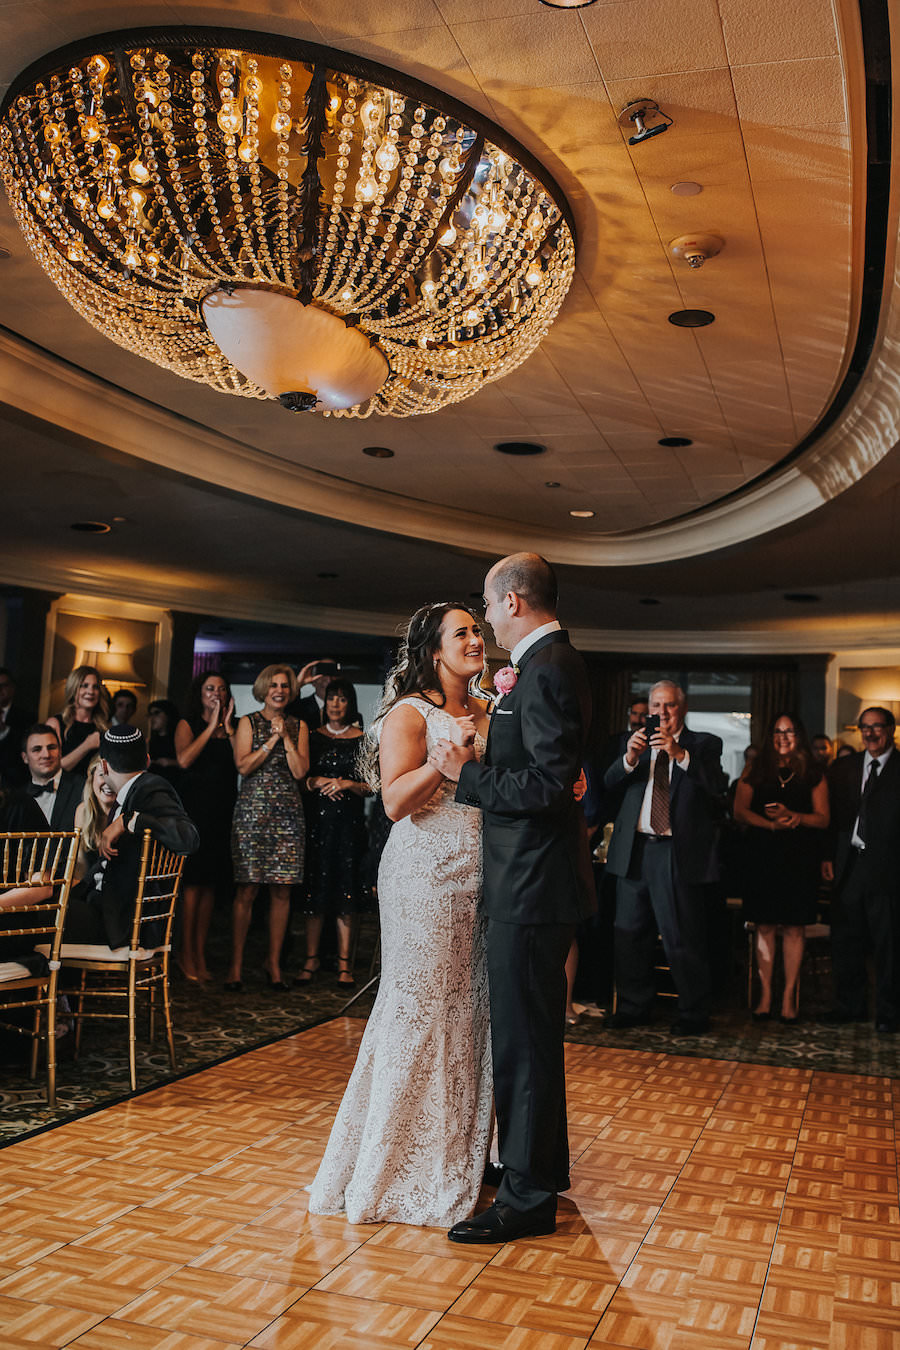 Bride and Groom First Dance at Wedding Reception | Downtown Tampa Wedding Photographer Rad Red Creative | Private Event Venue The Tampa Club